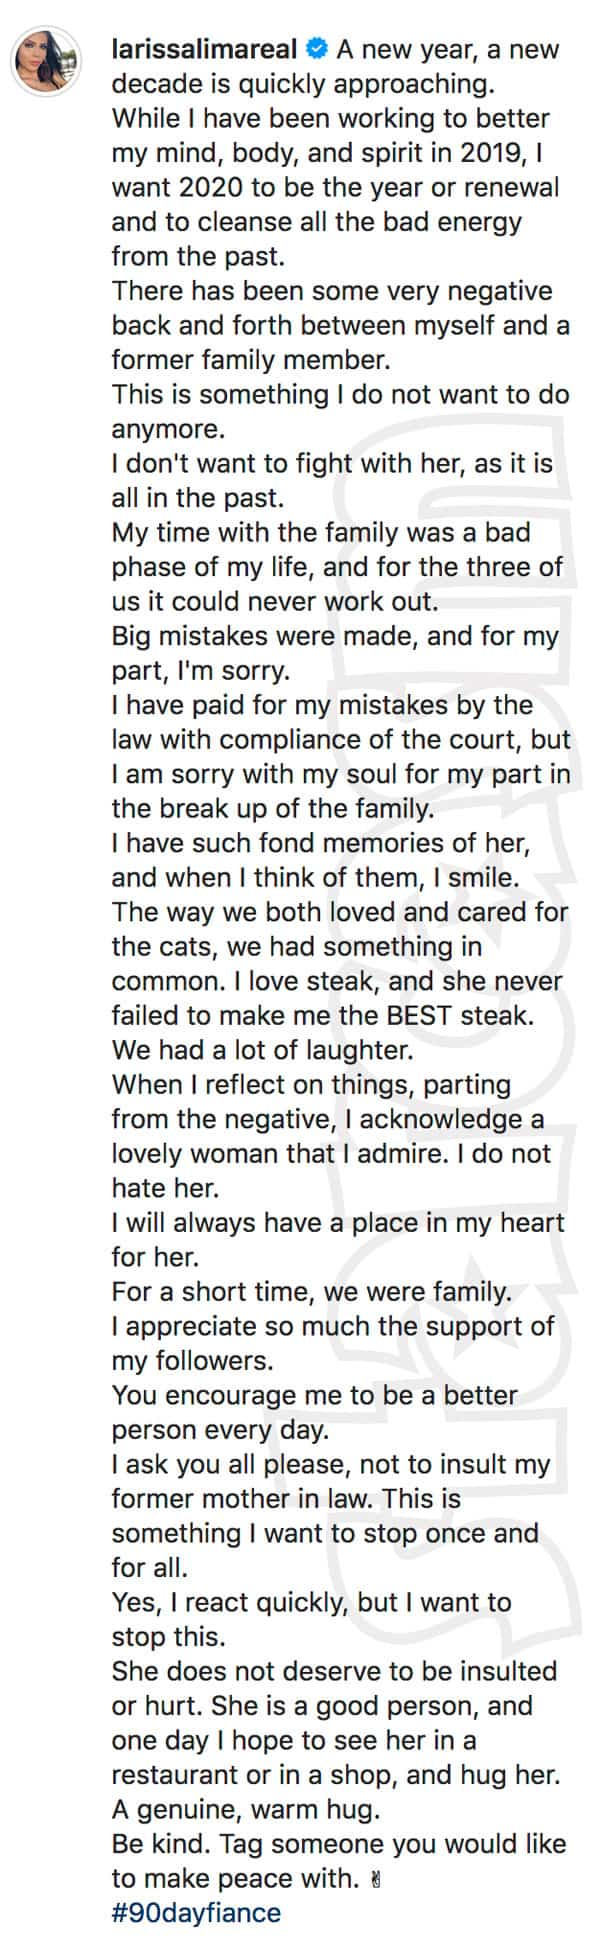 90 Day Fiance Larissa and Colt's mother Debbie peace offering